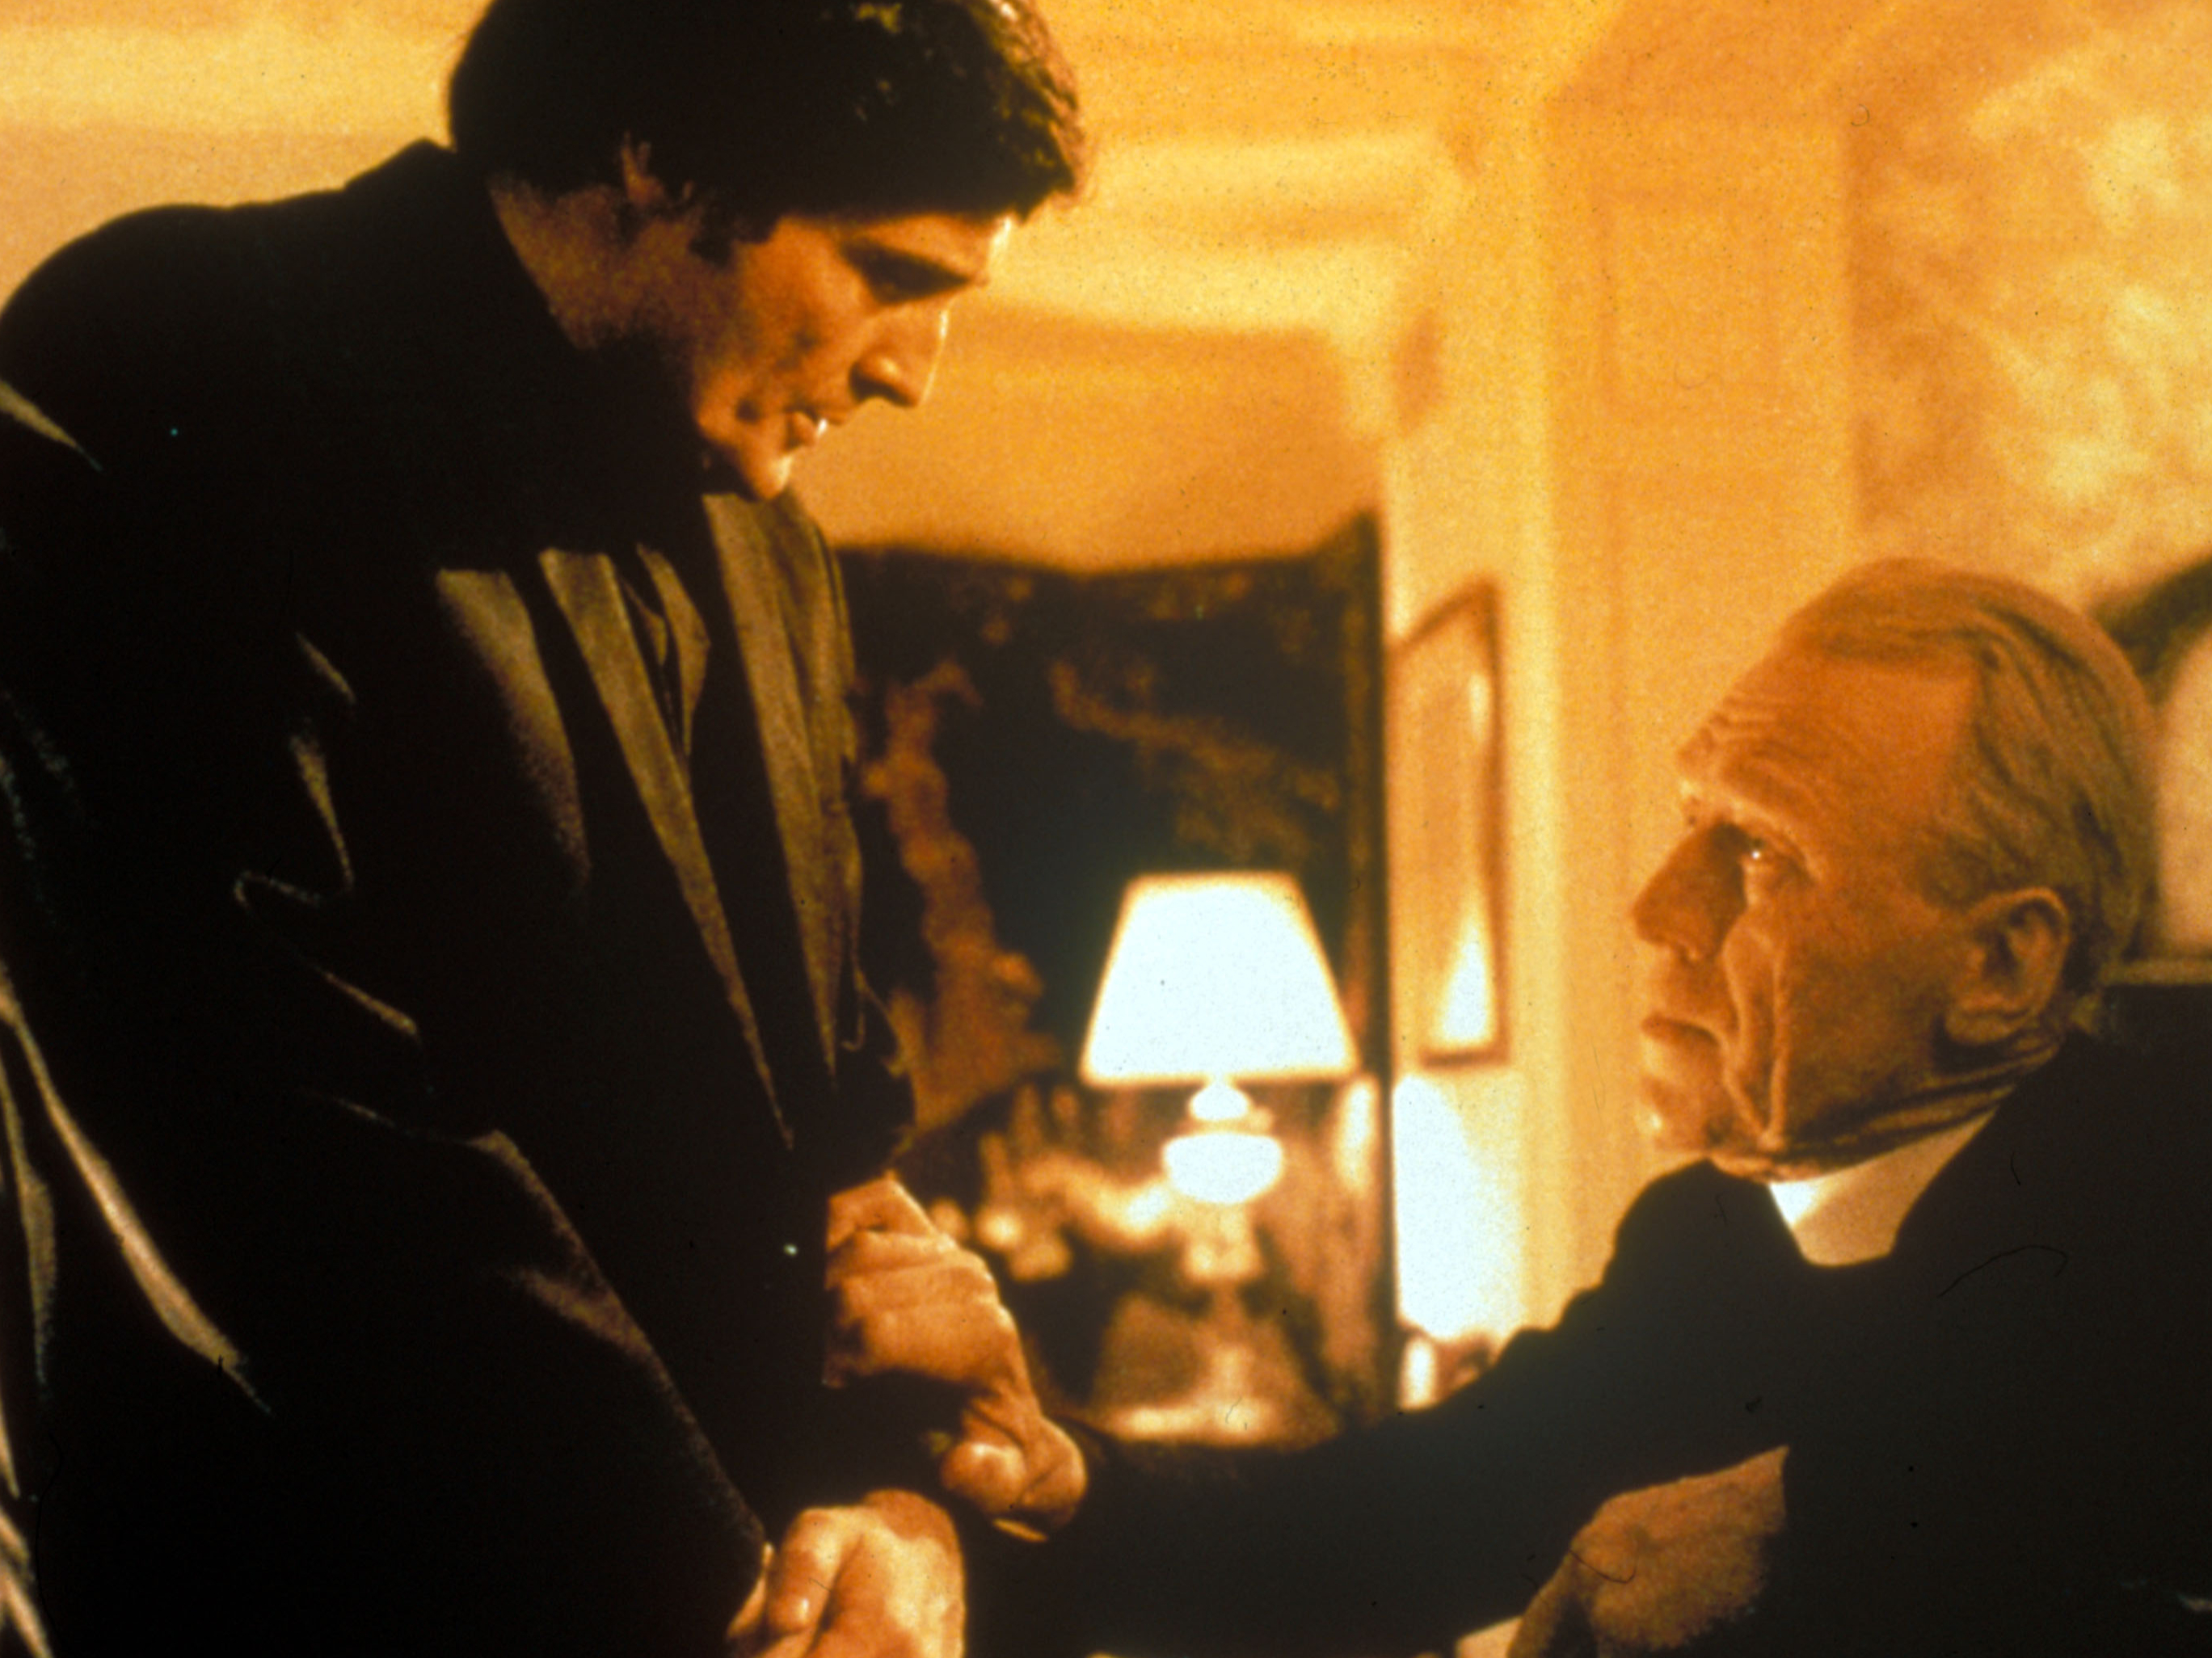 Jason Miller and Max Von Sydow in 'The Exorcist'